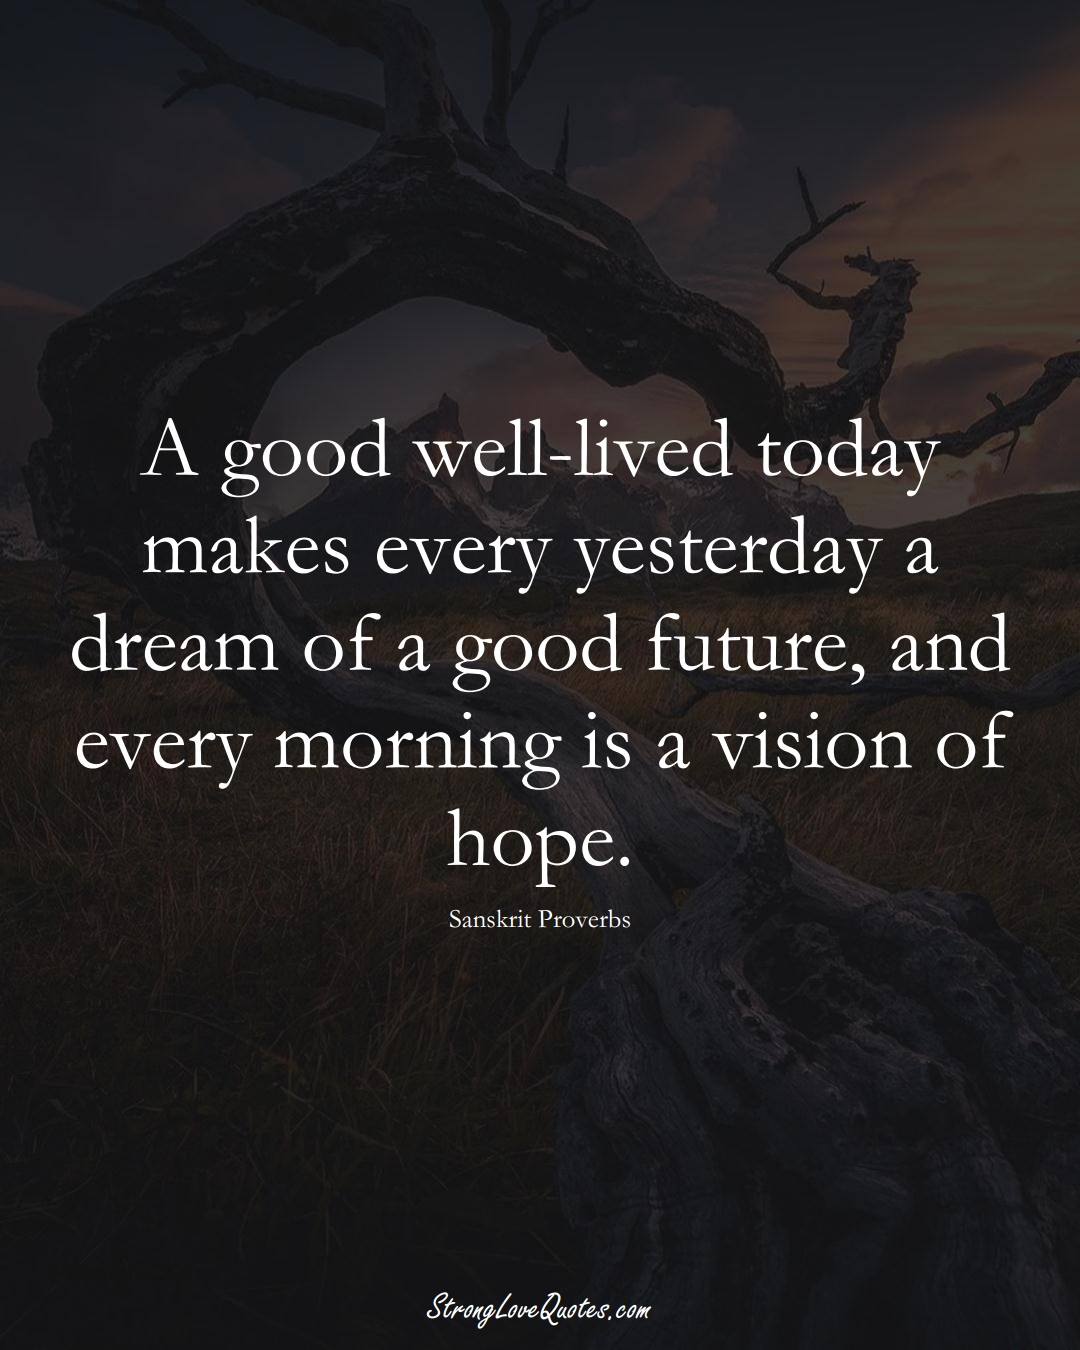 A good well-lived today makes every yesterday a dream of a good future, and every morning is a vision of hope. (Sanskrit Sayings);  #aVarietyofCulturesSayings